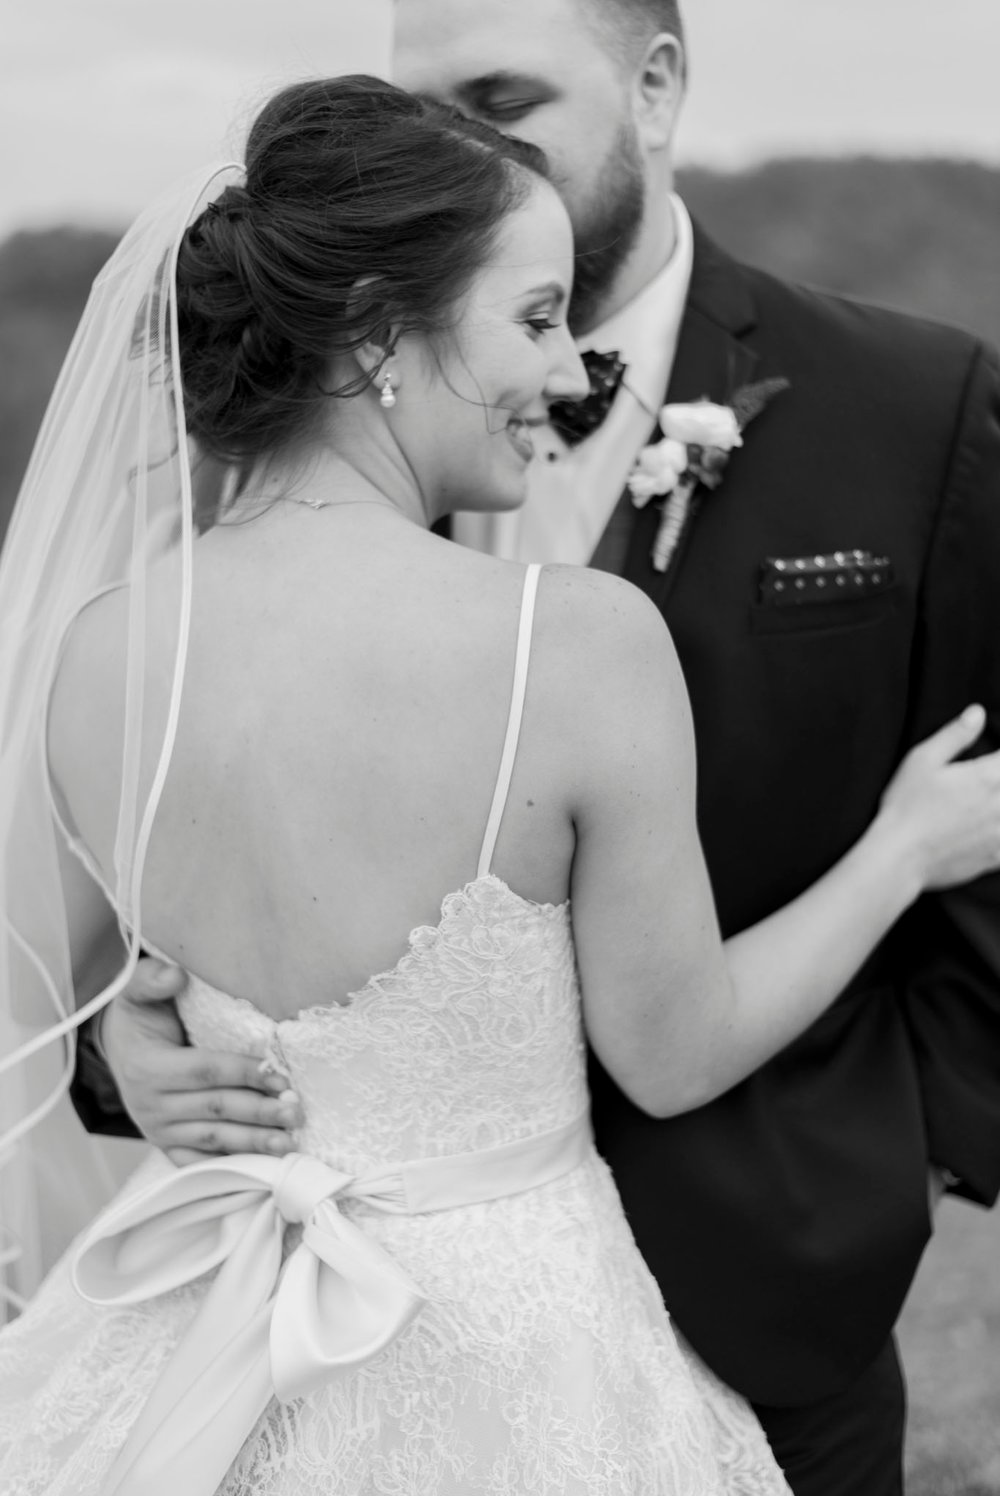 IrvineEstate_LexingtonVA_Wedding_FallWedding_VirginiaWeddingPhotographer 91.jpg